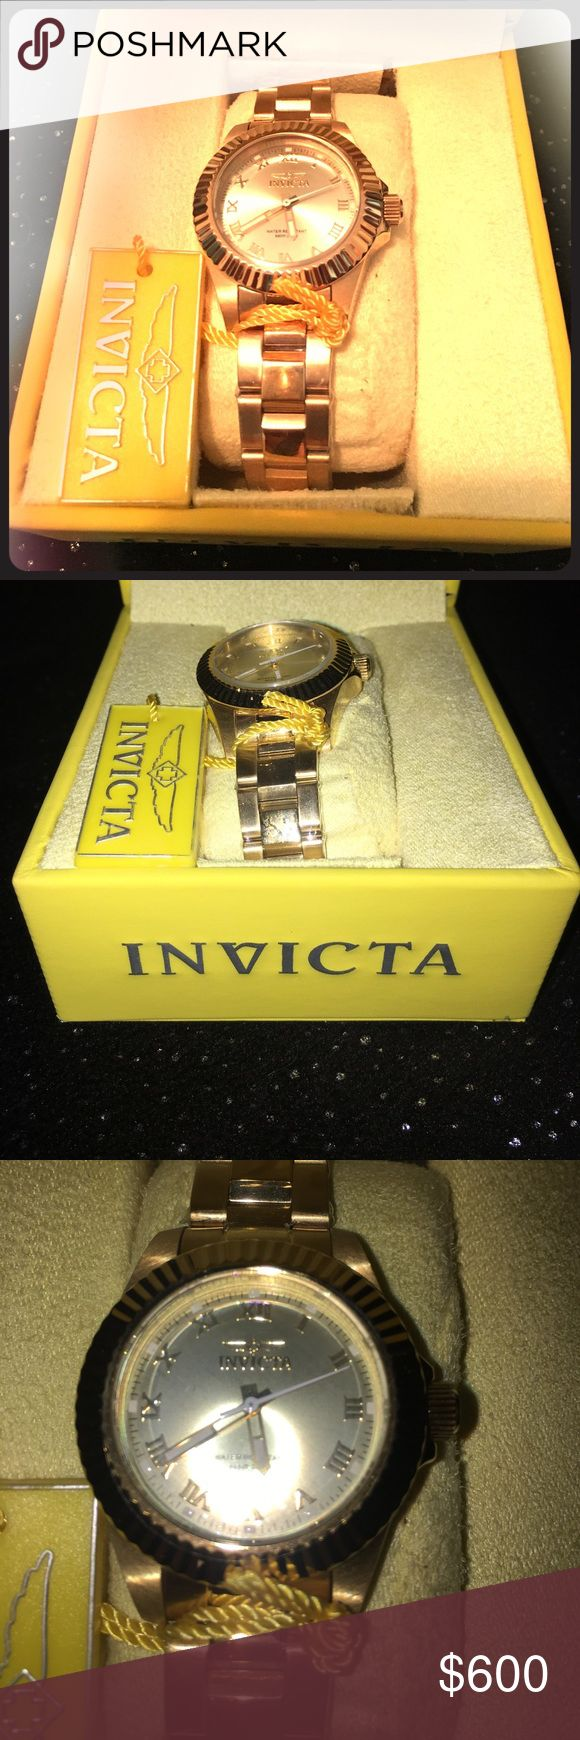 Invicta Gold Watch This is a beautiful watch!!!! Never worn still in packaging!!!!!! Invicta Accessories Watches